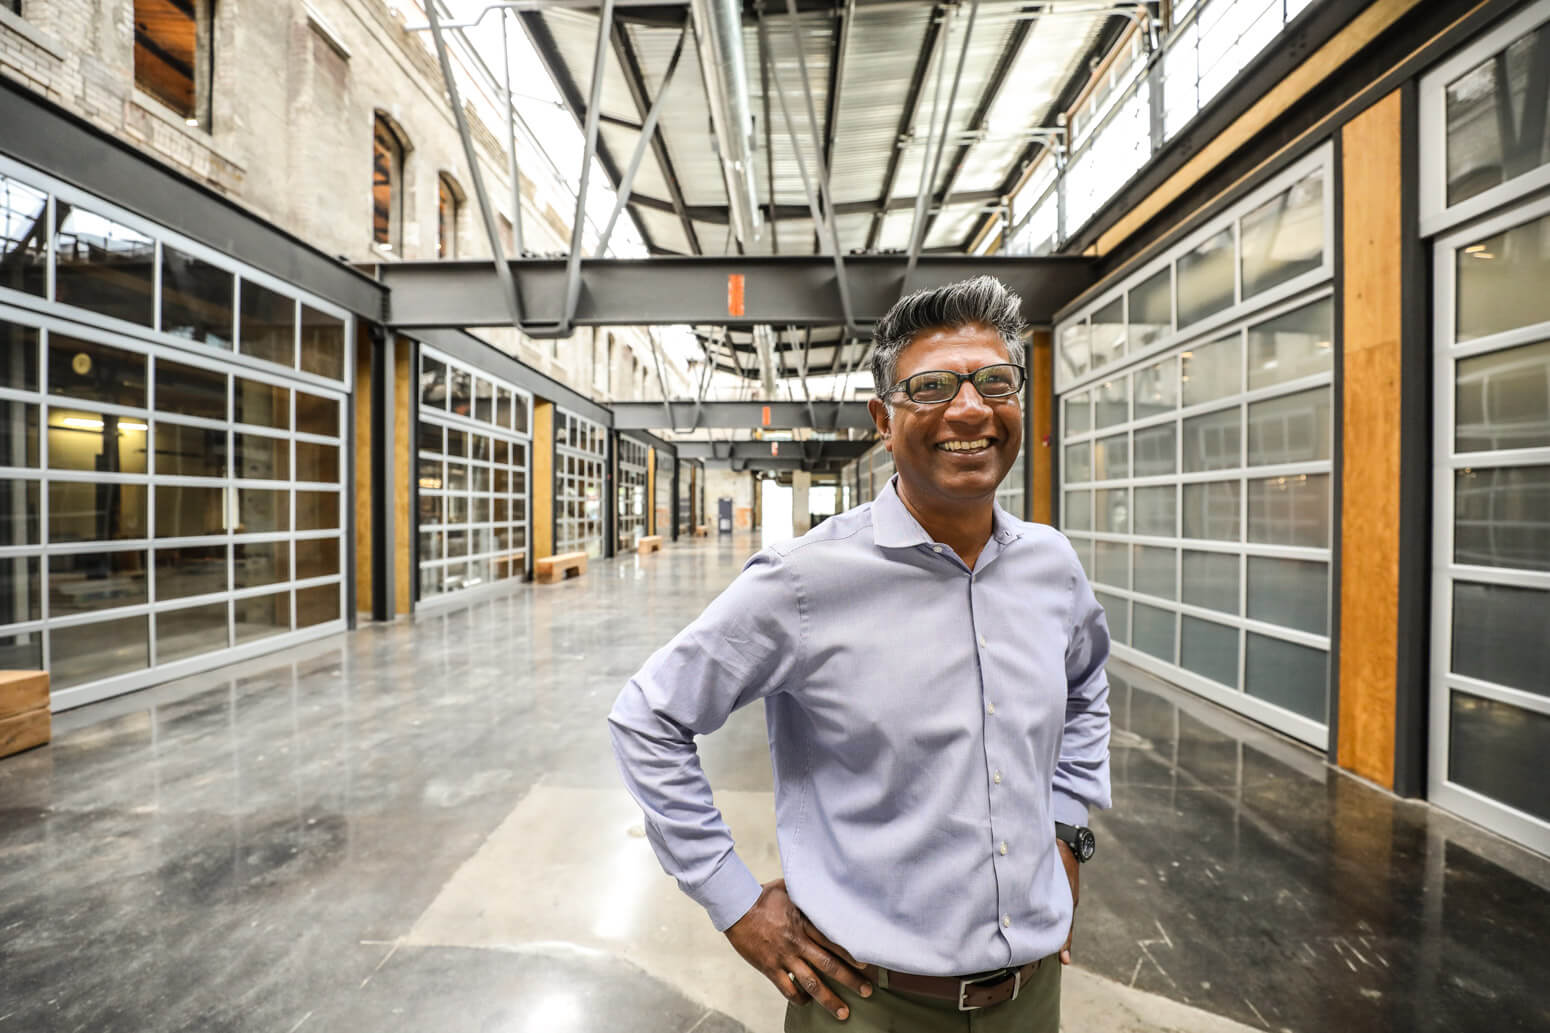 Vena Solutions CEO Don Mal in the lobby of Vena's new headquarters in Toronto's Liberty Village.